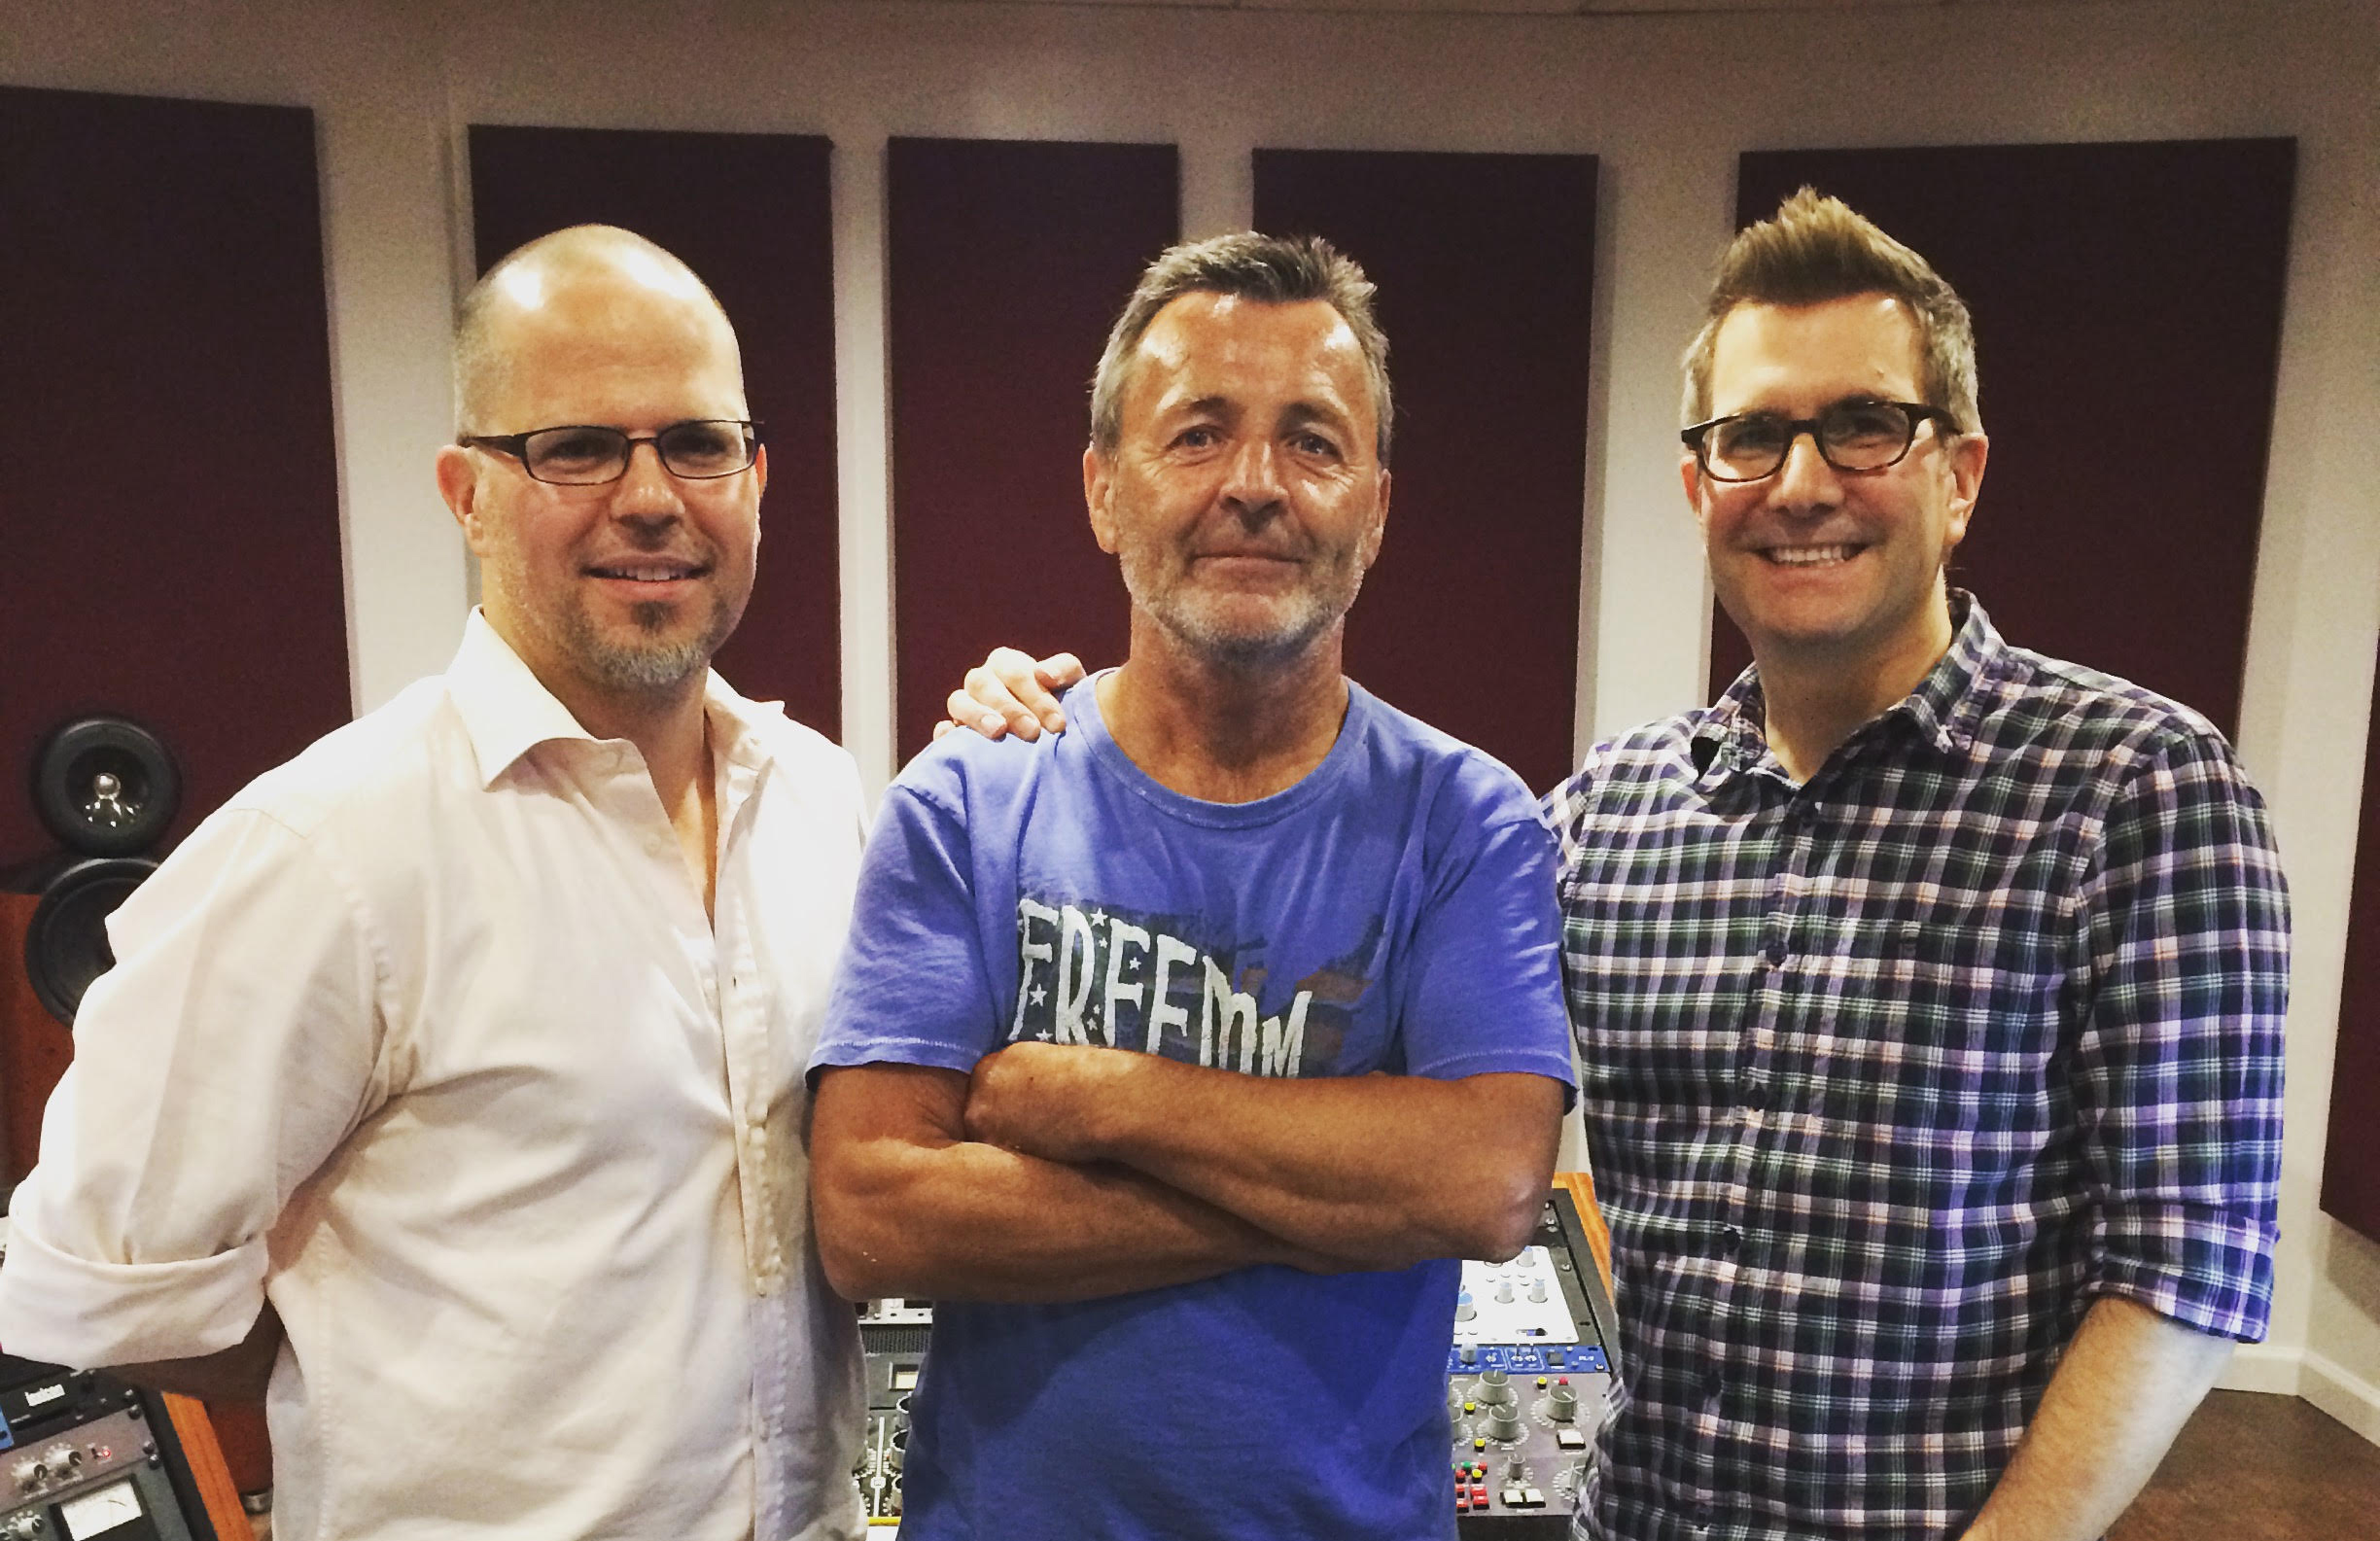 With Producer Glen Muñoz & Joe Lambert at JL Mastering